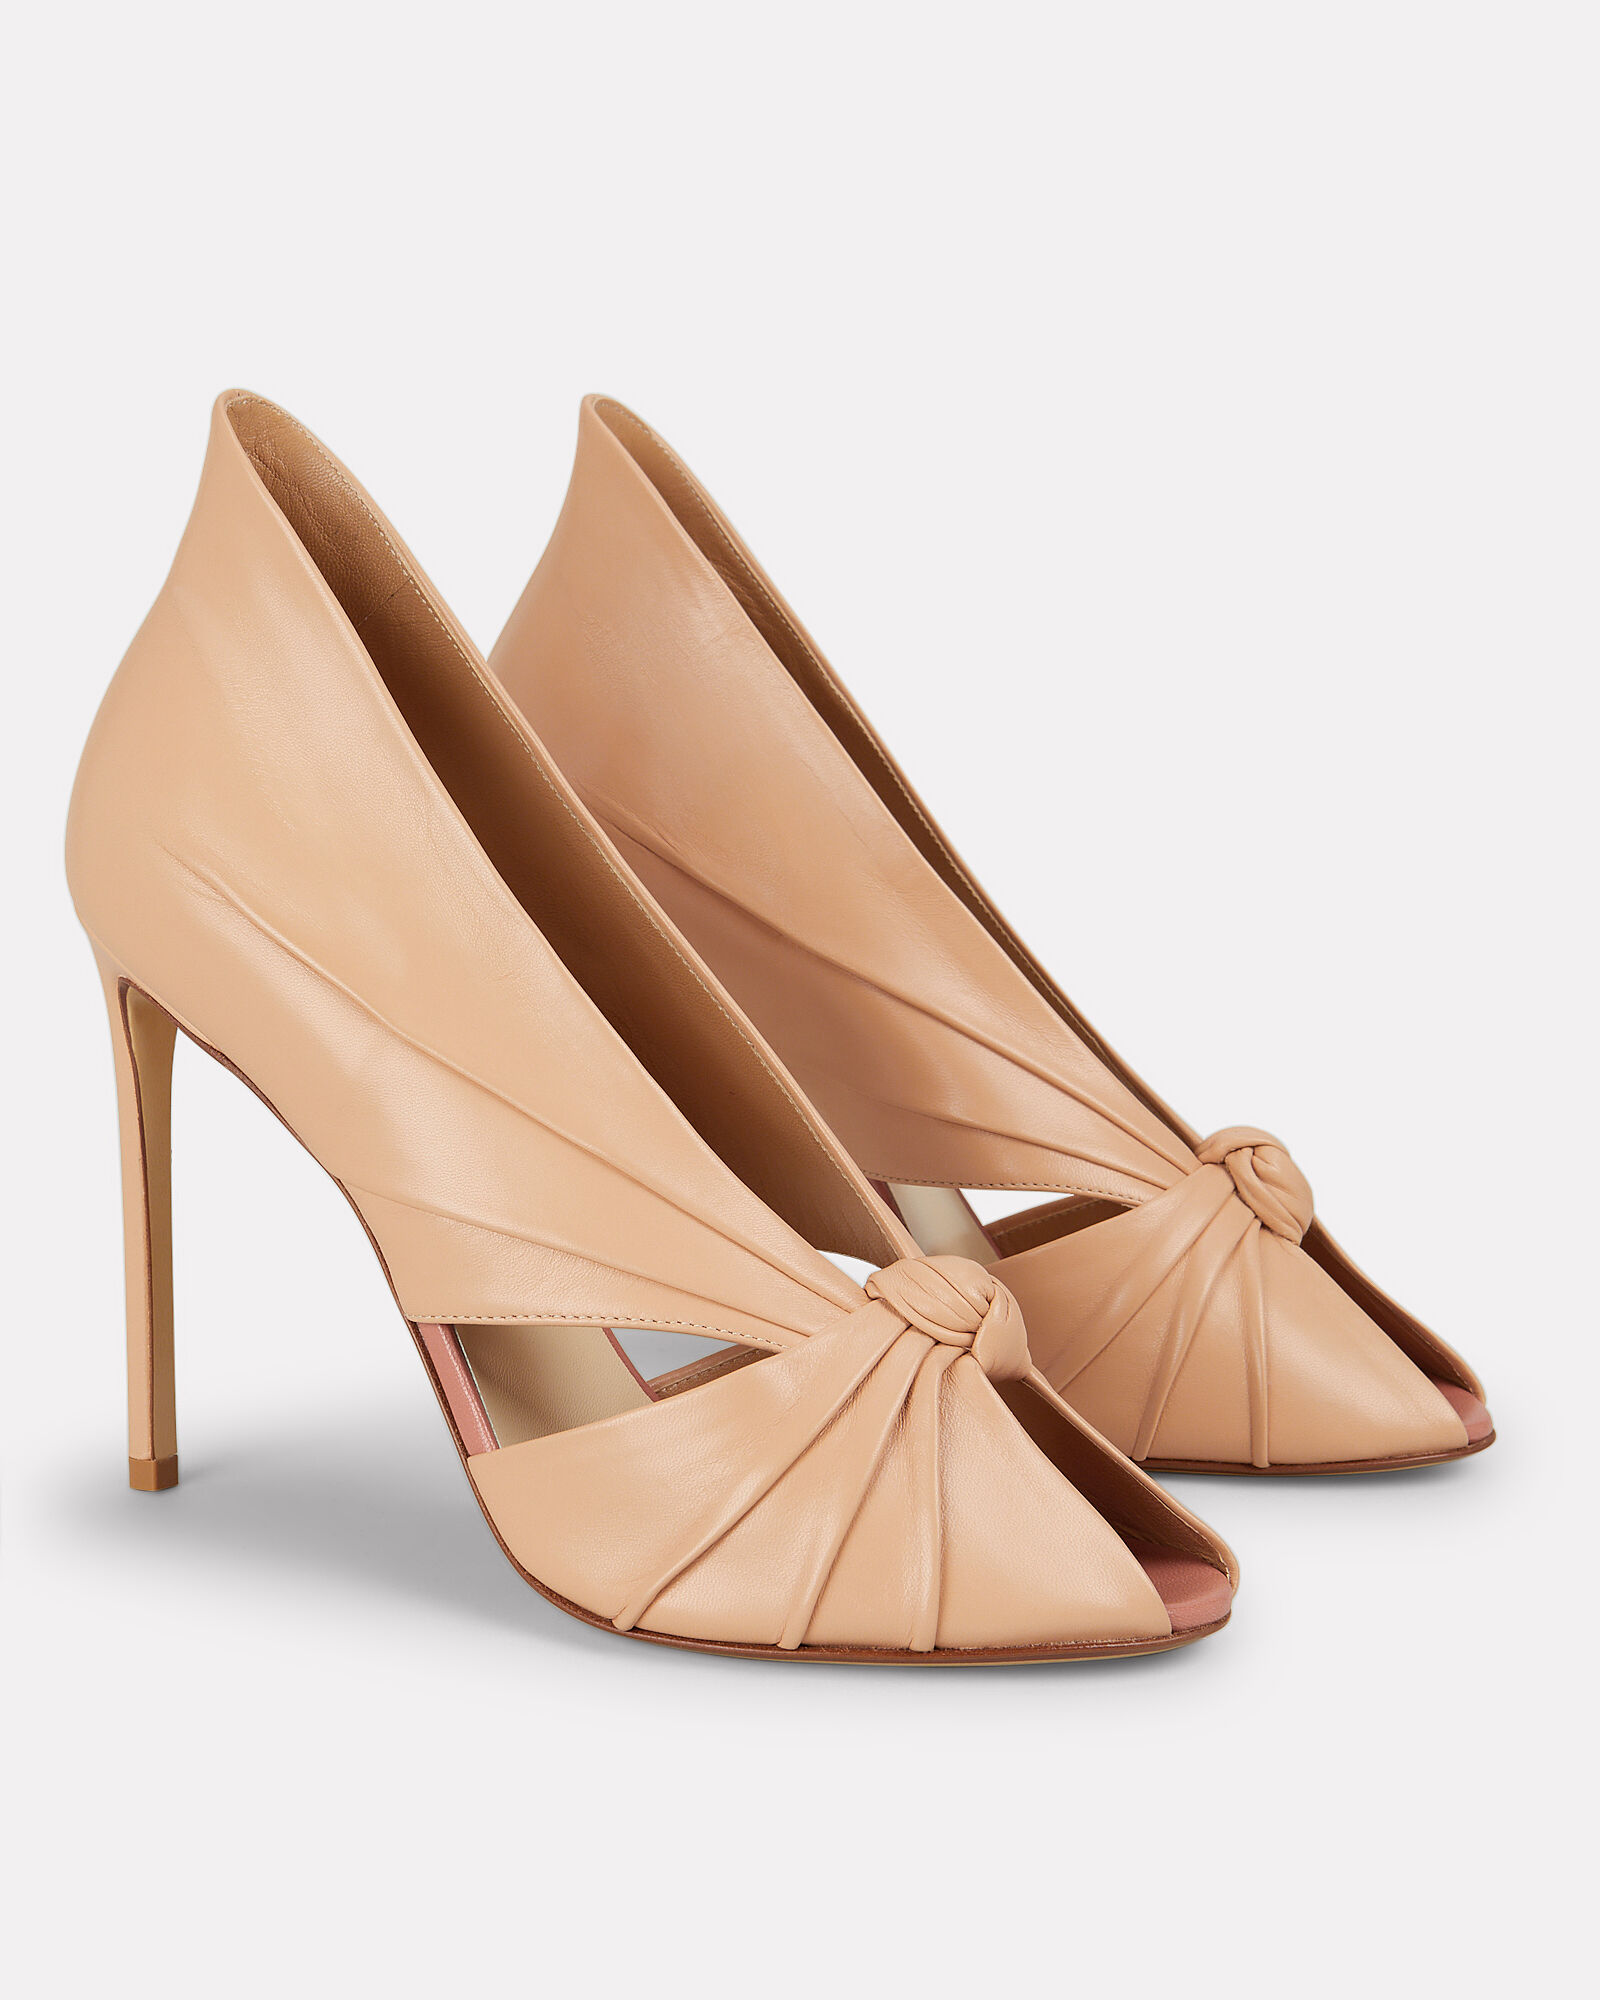 Knotted Point Back Beige Leather Pumps, BEIGE, hi-res